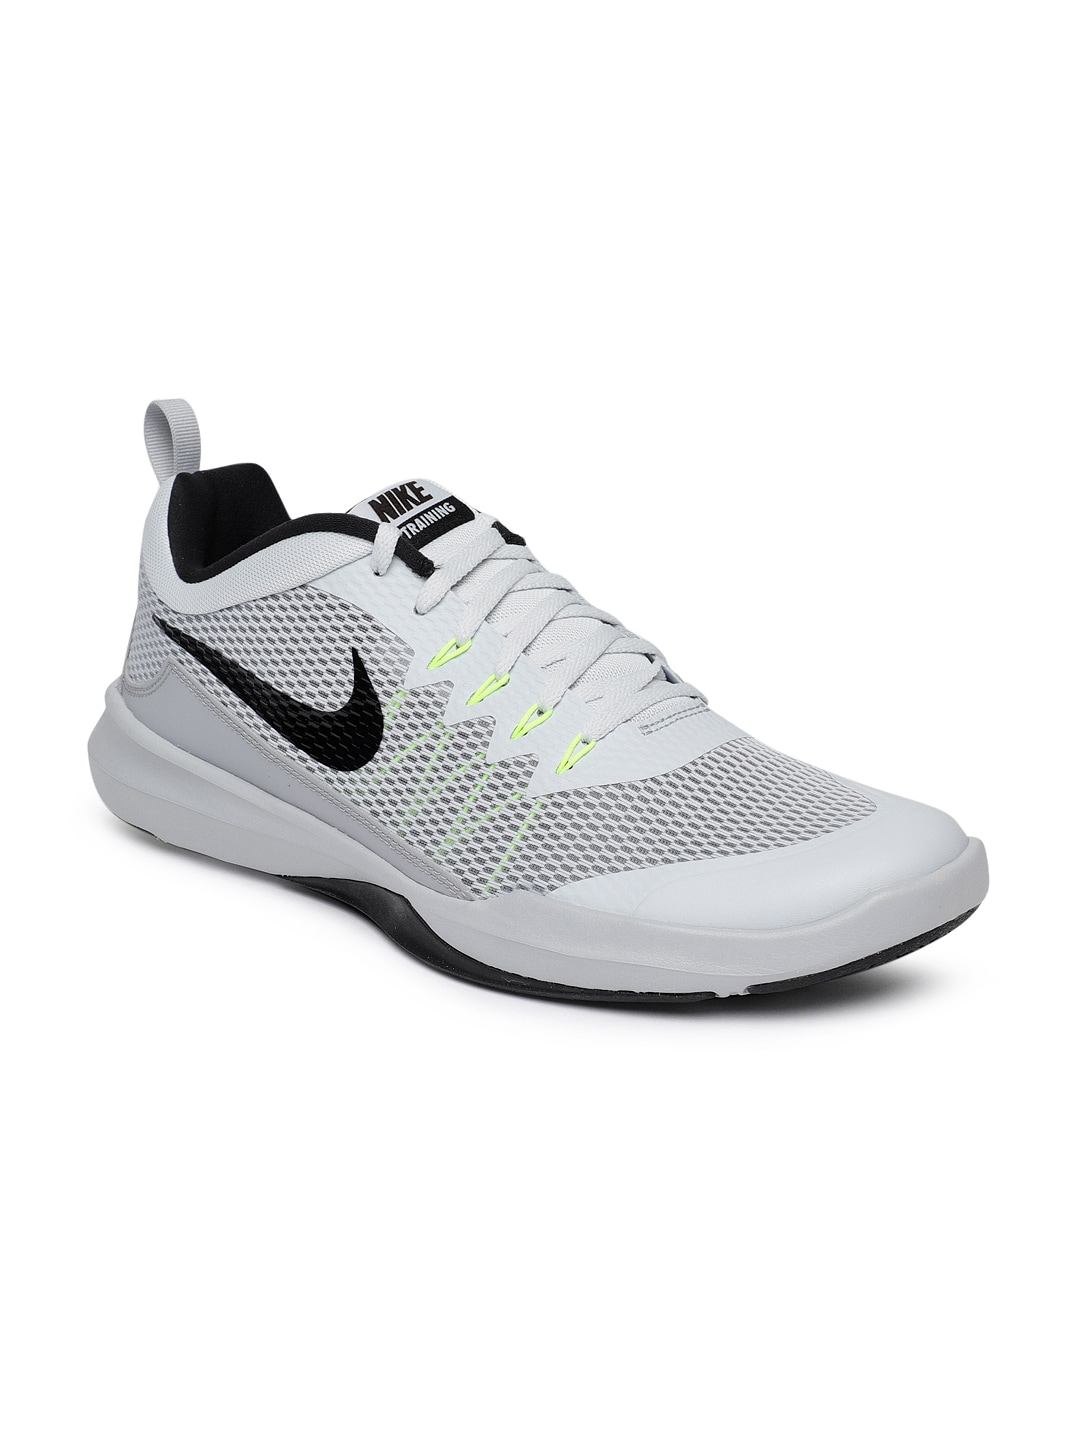 timeless design 51f2d 81a0b Nike Shoes - Buy Nike Shoes for Men, Women   Kids Online   Myntra